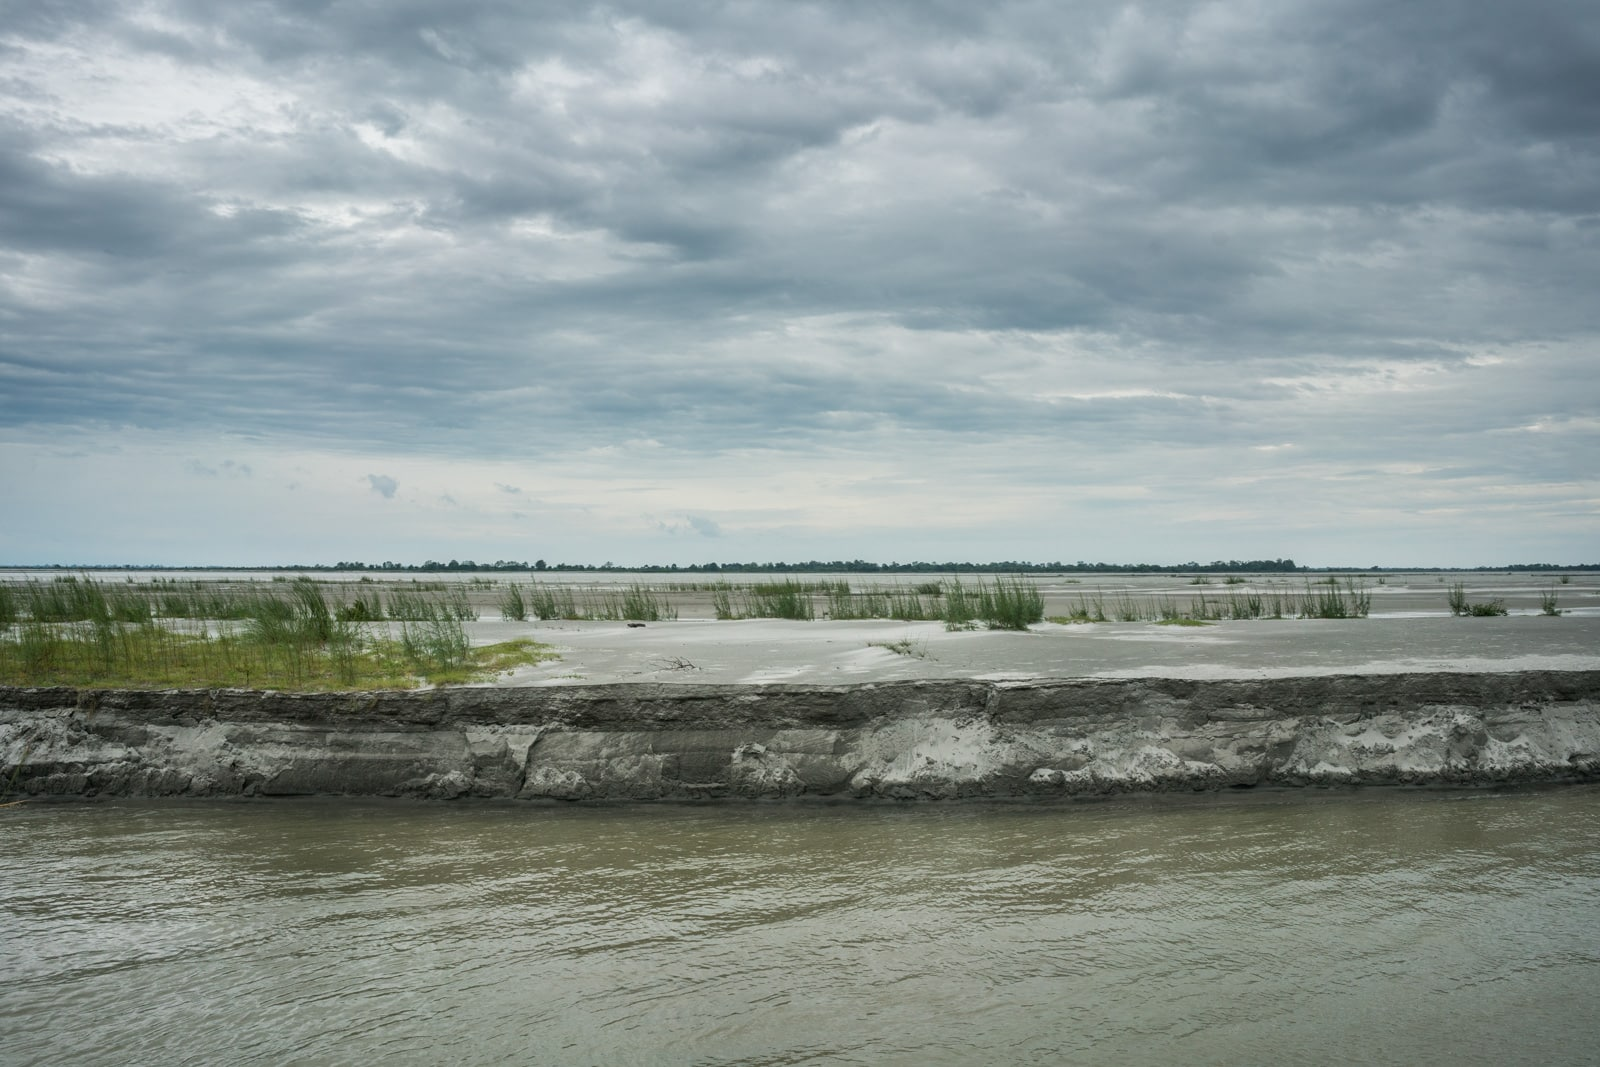 Eroding banks of Majuli river island in Assam, India - Lost With Purpose travel blog